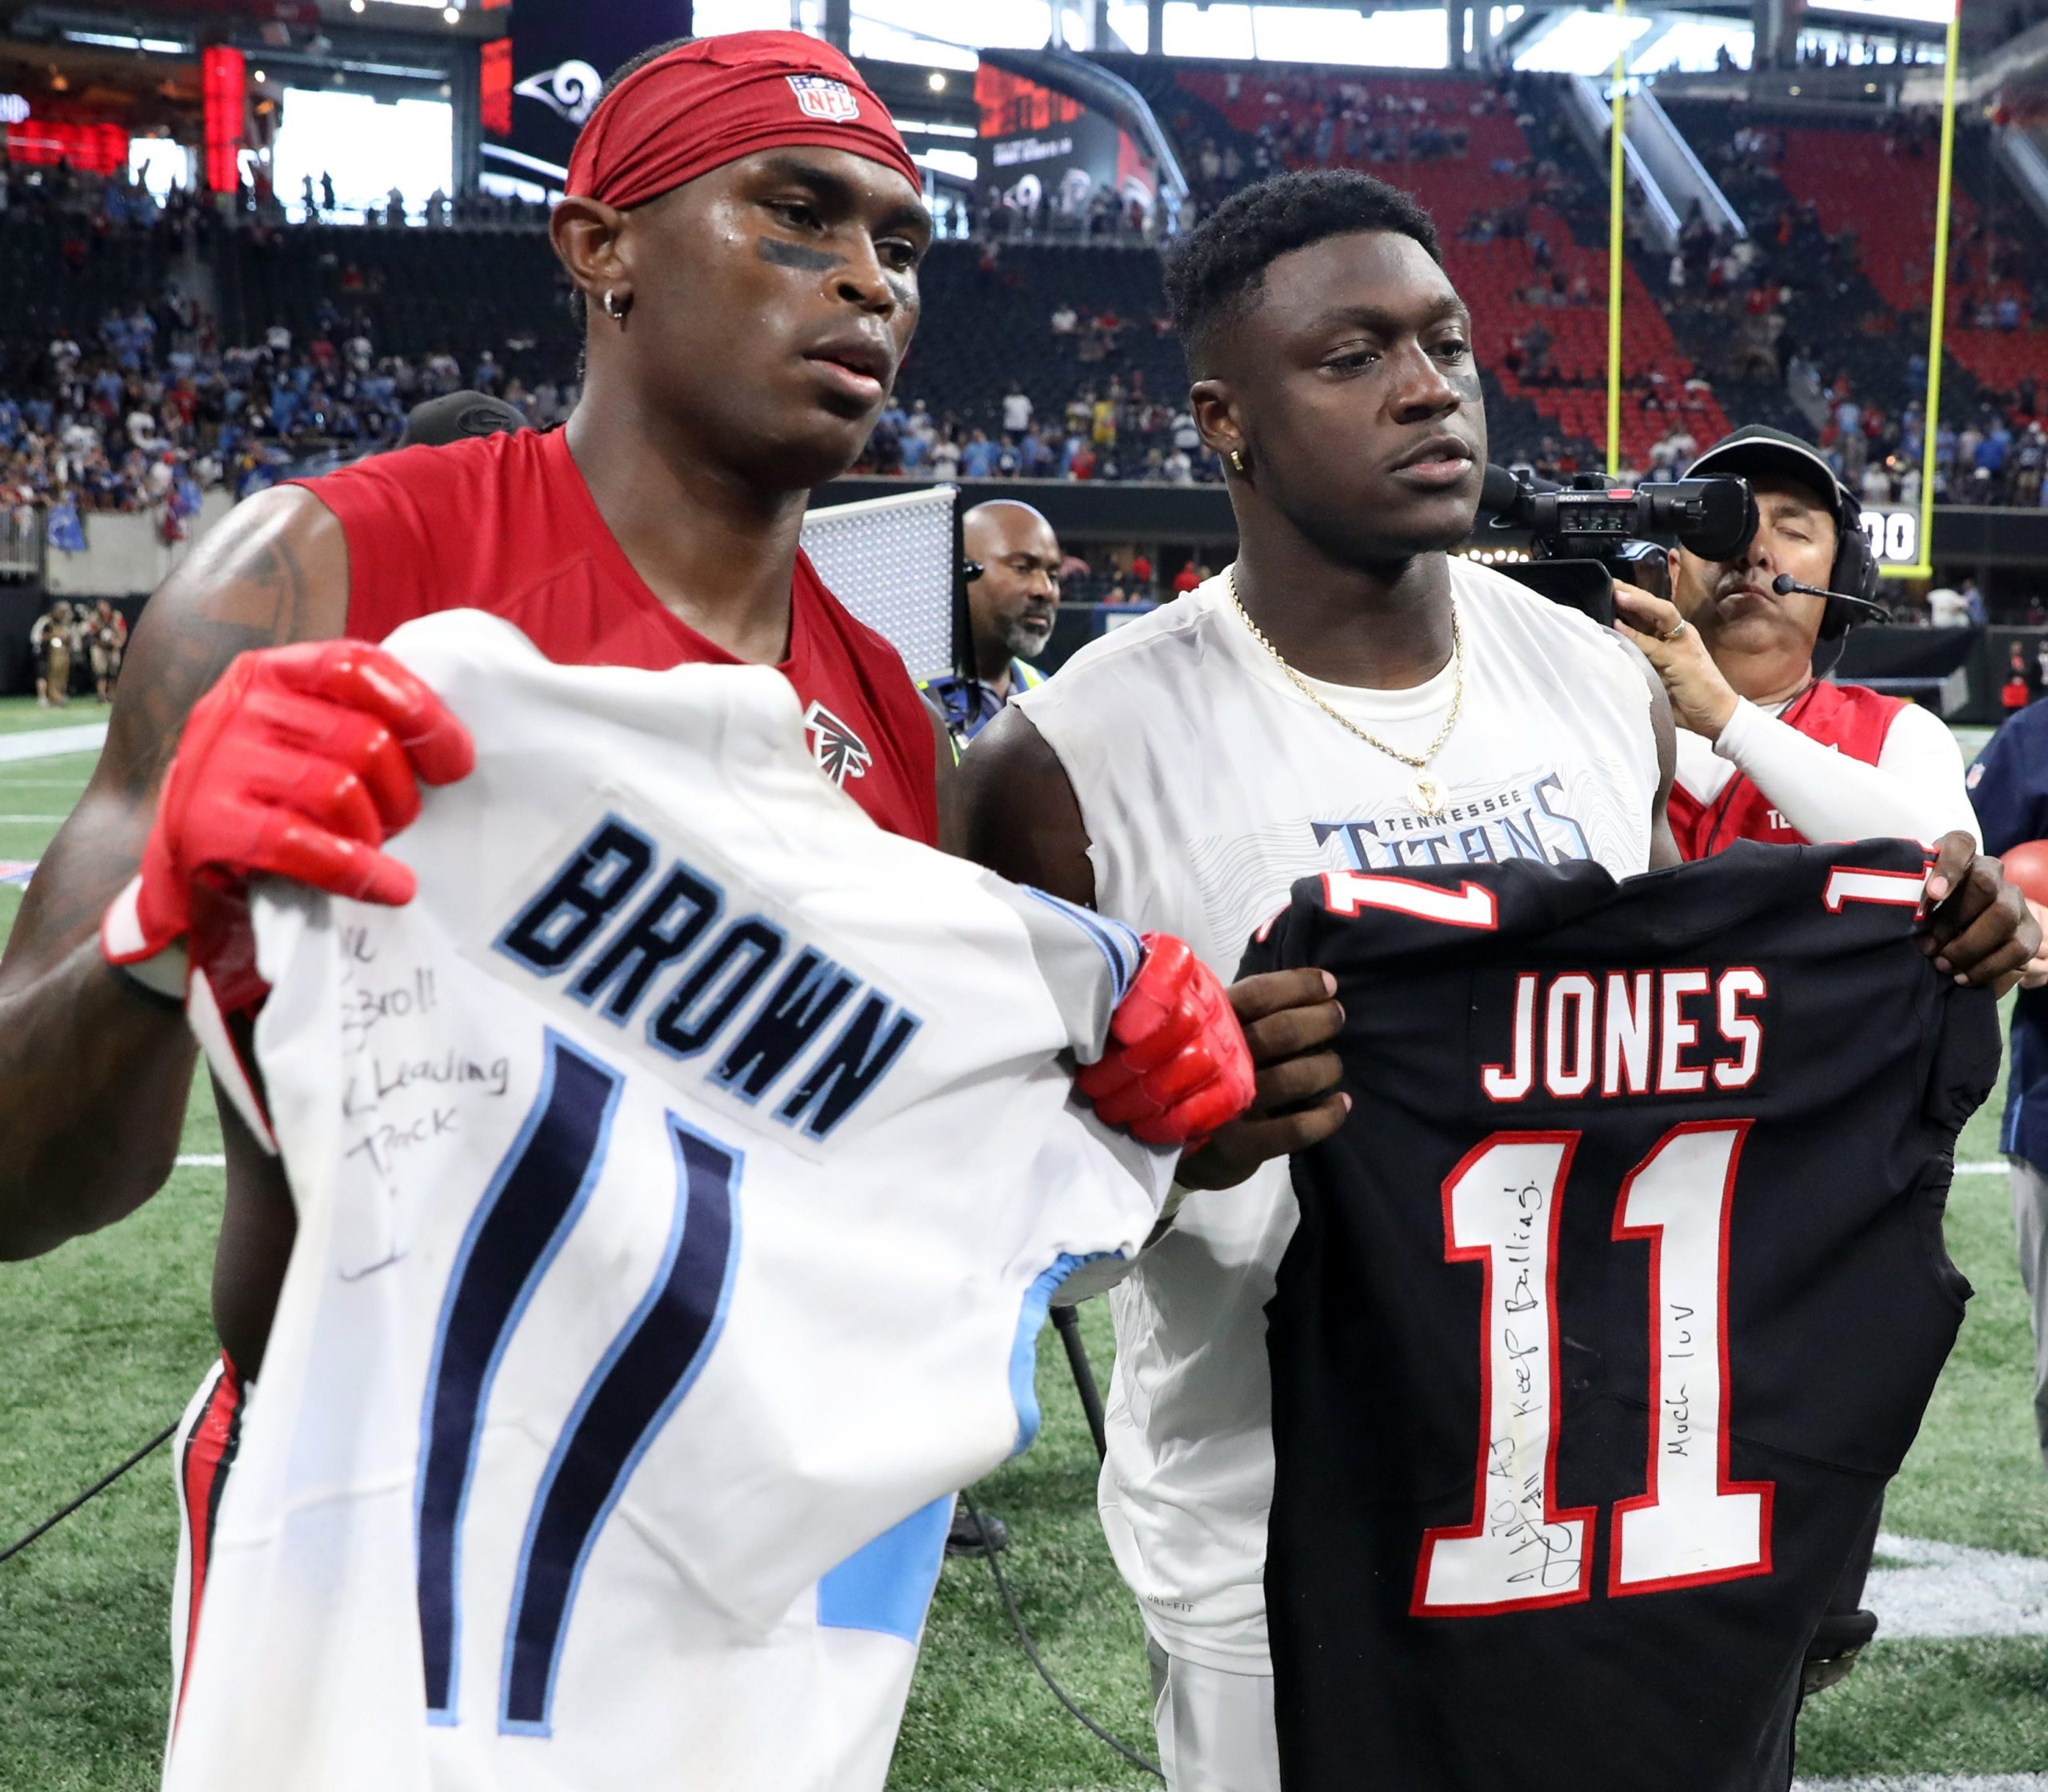 Julio Jones Traded To Tennessee Titans For Draft Picks